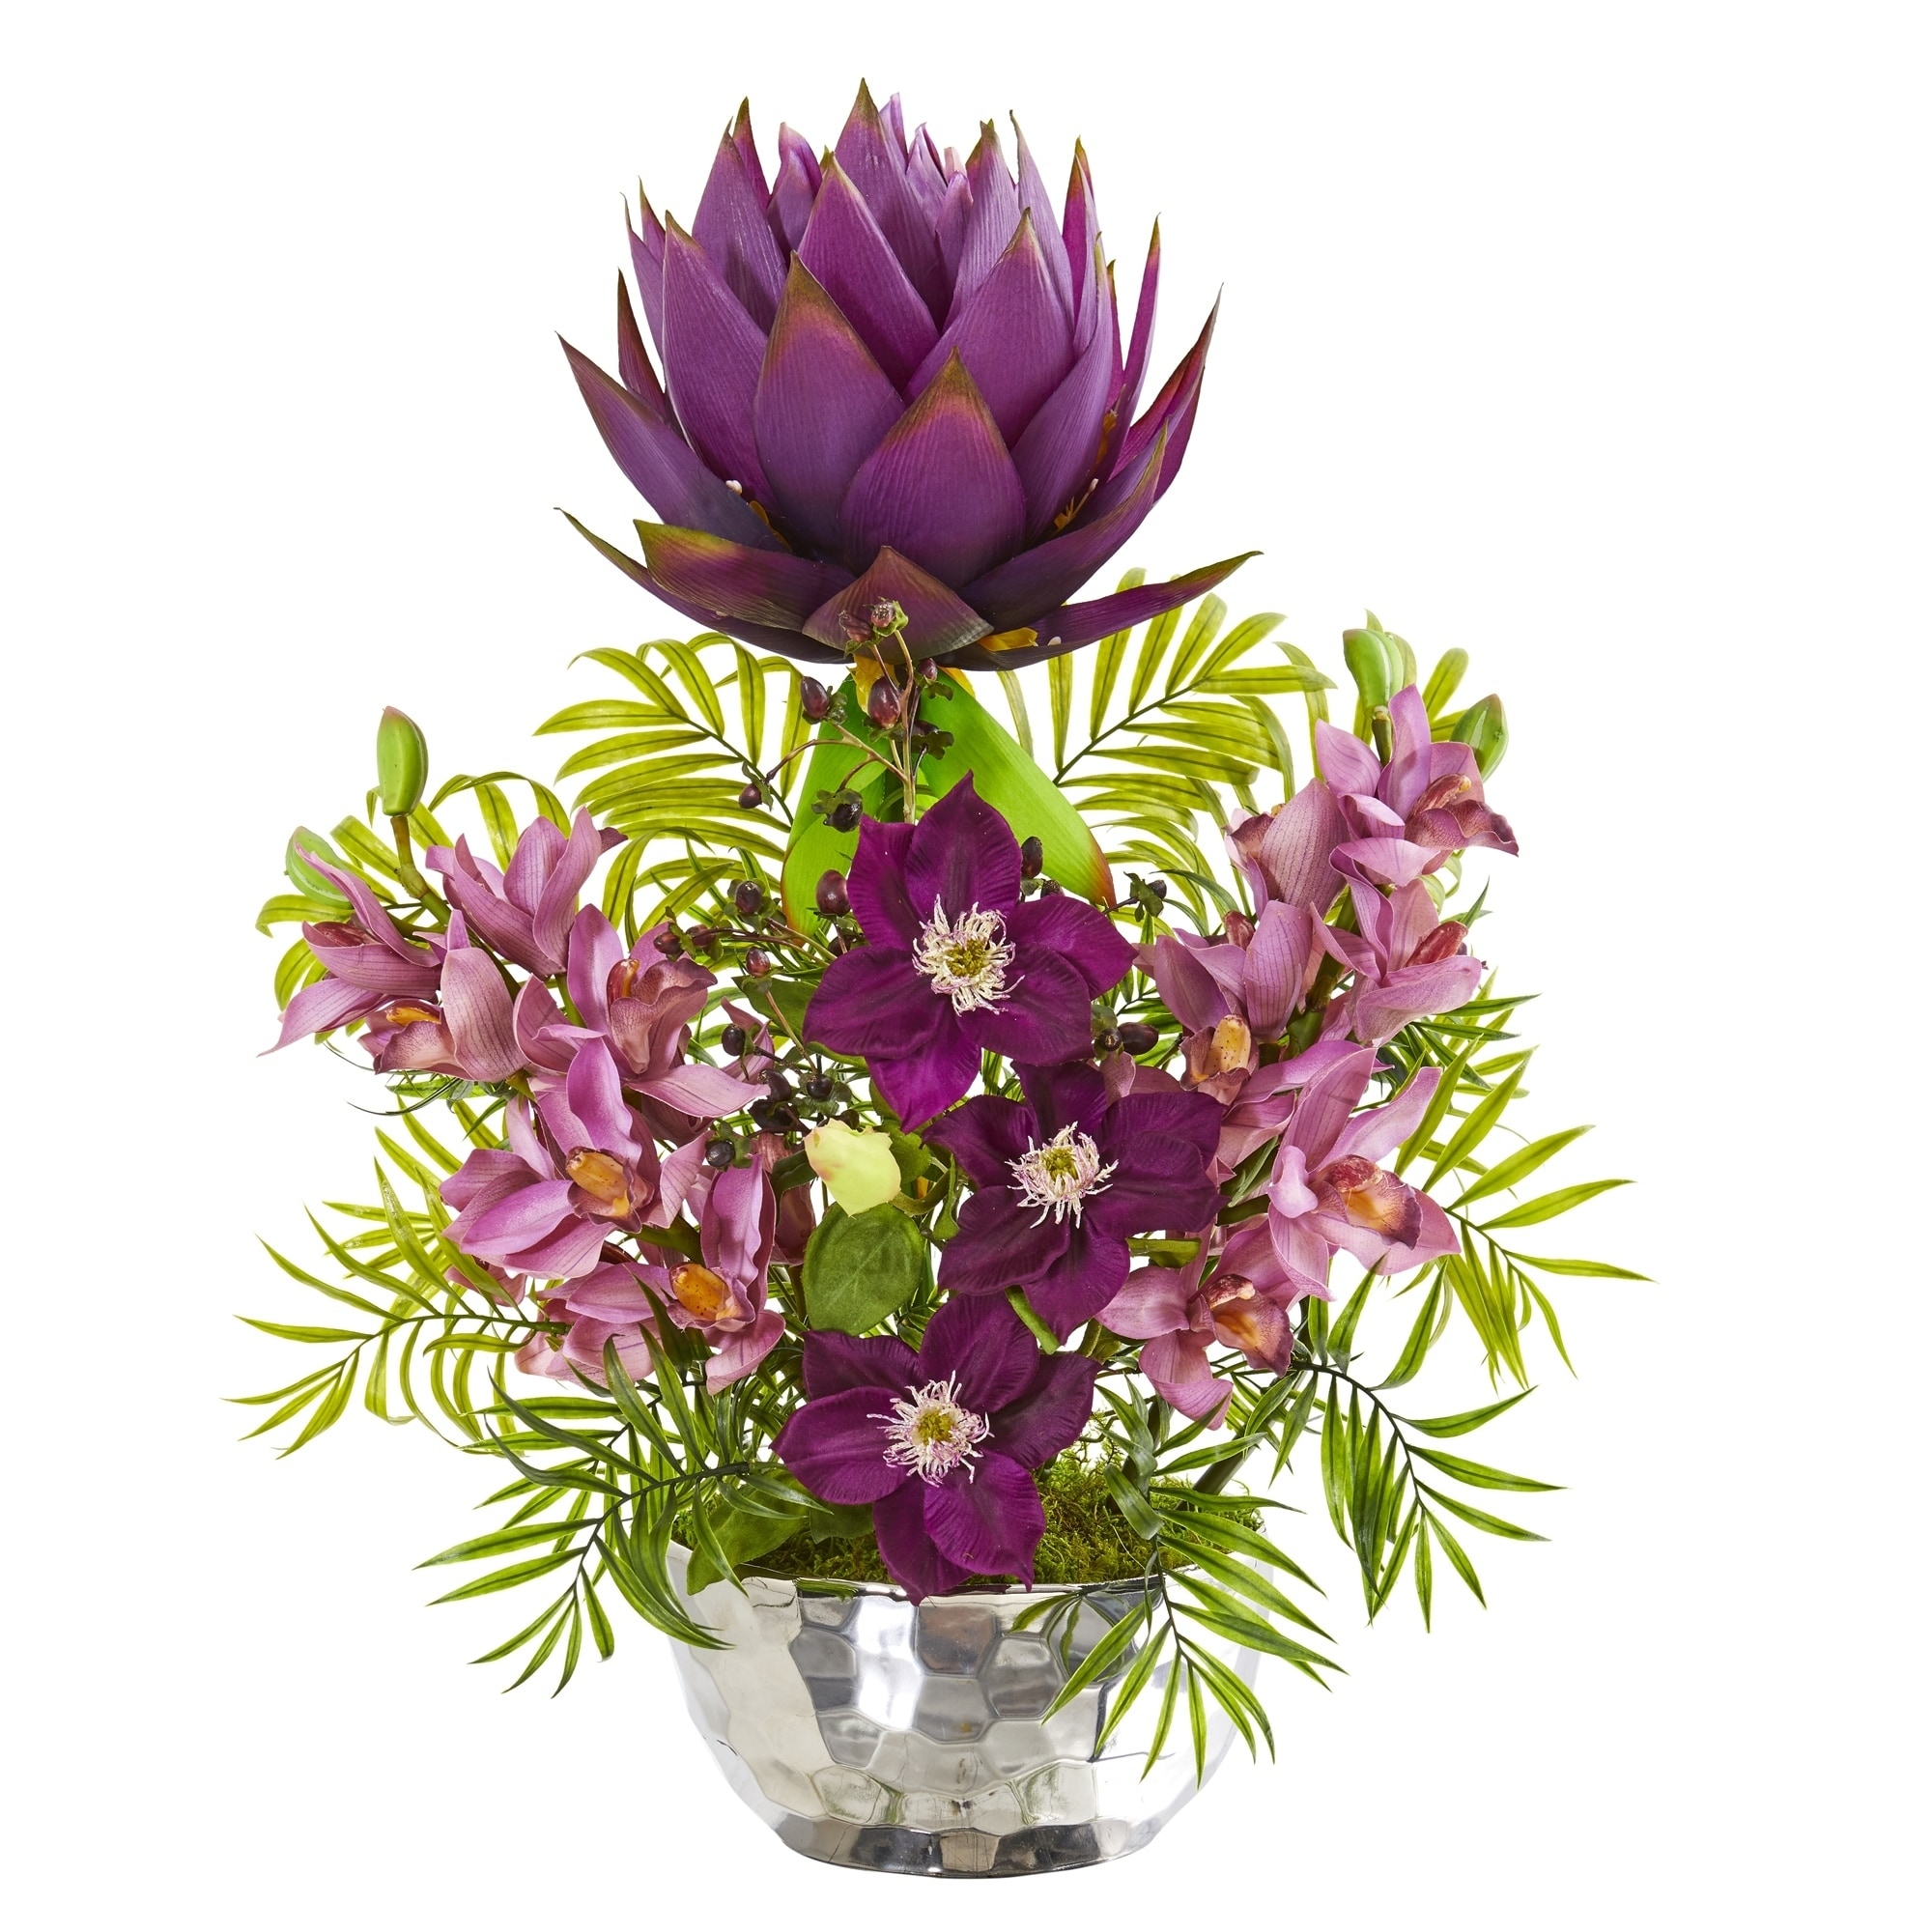 24 Cymbidium Orchid and Mixed Floral Artificial Arrangement in Silver Vase